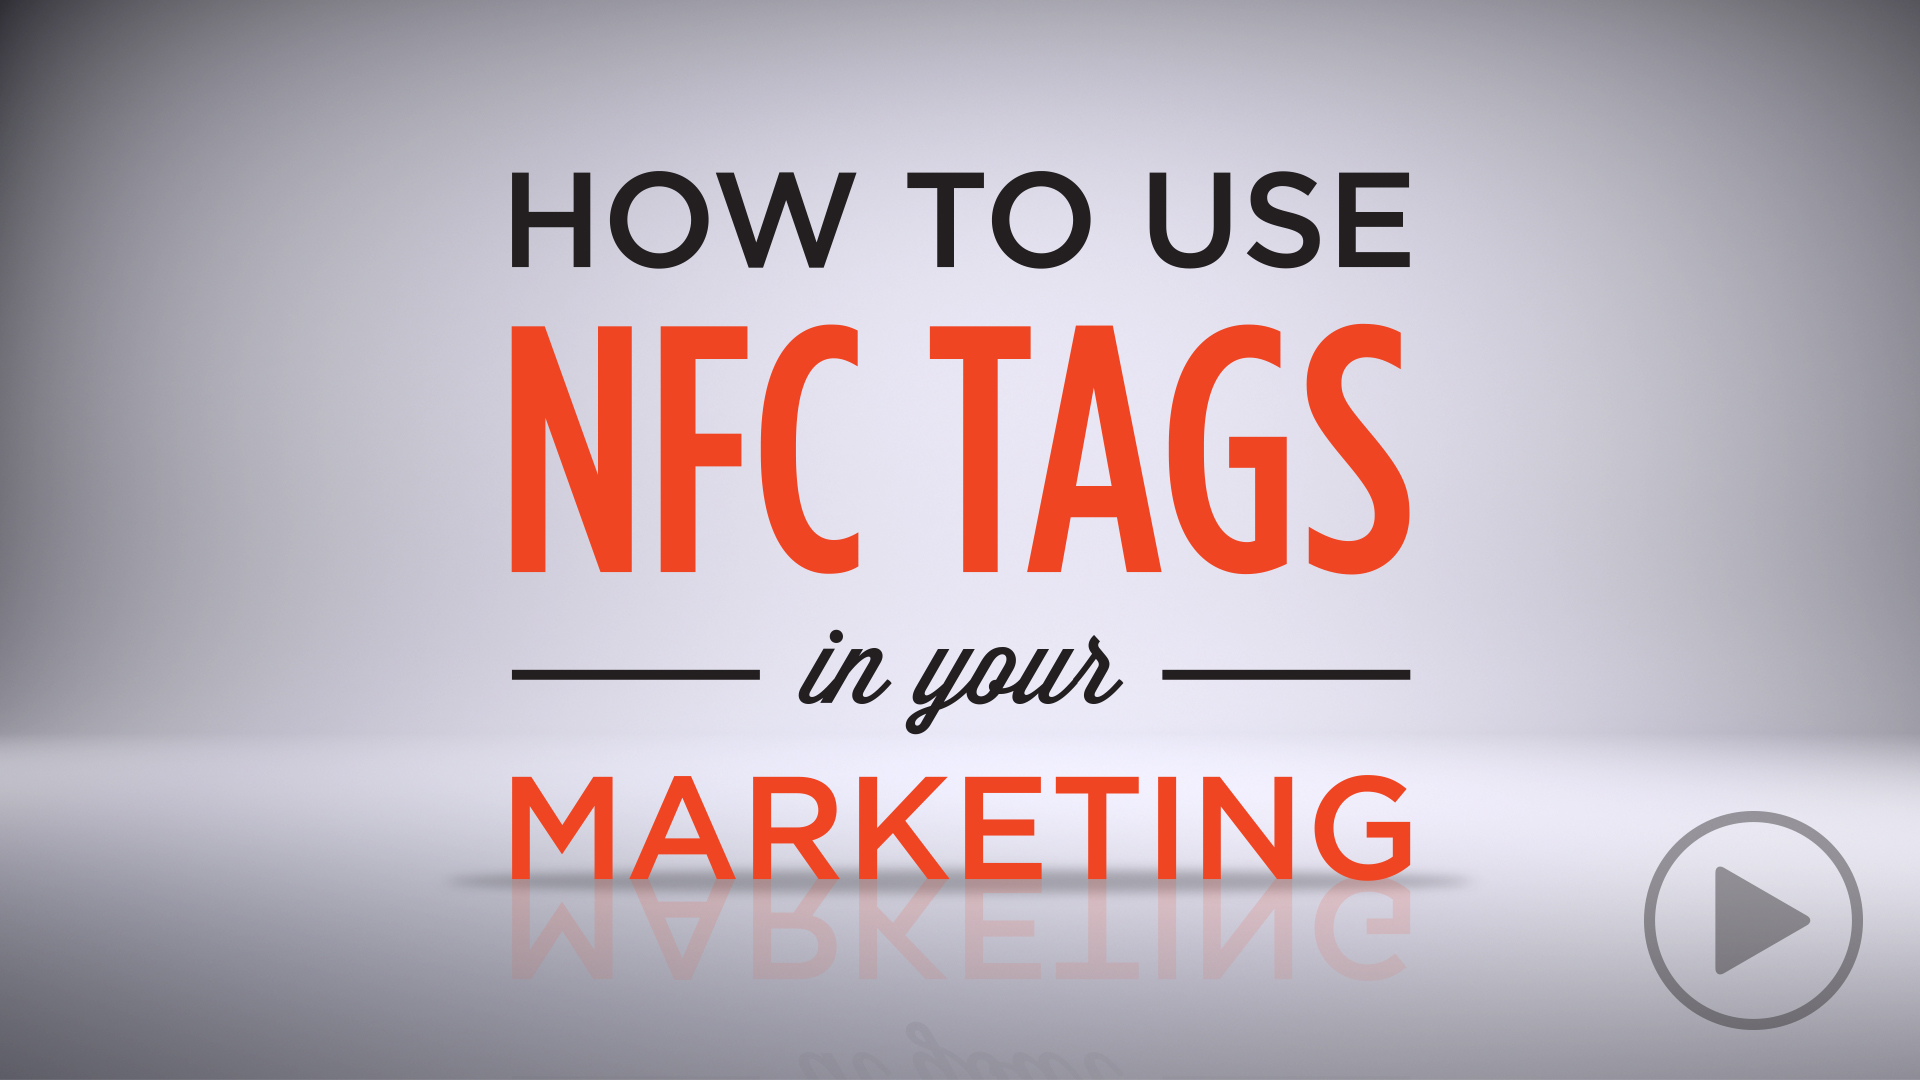 How to Use NFC Tags in your Own Marketing